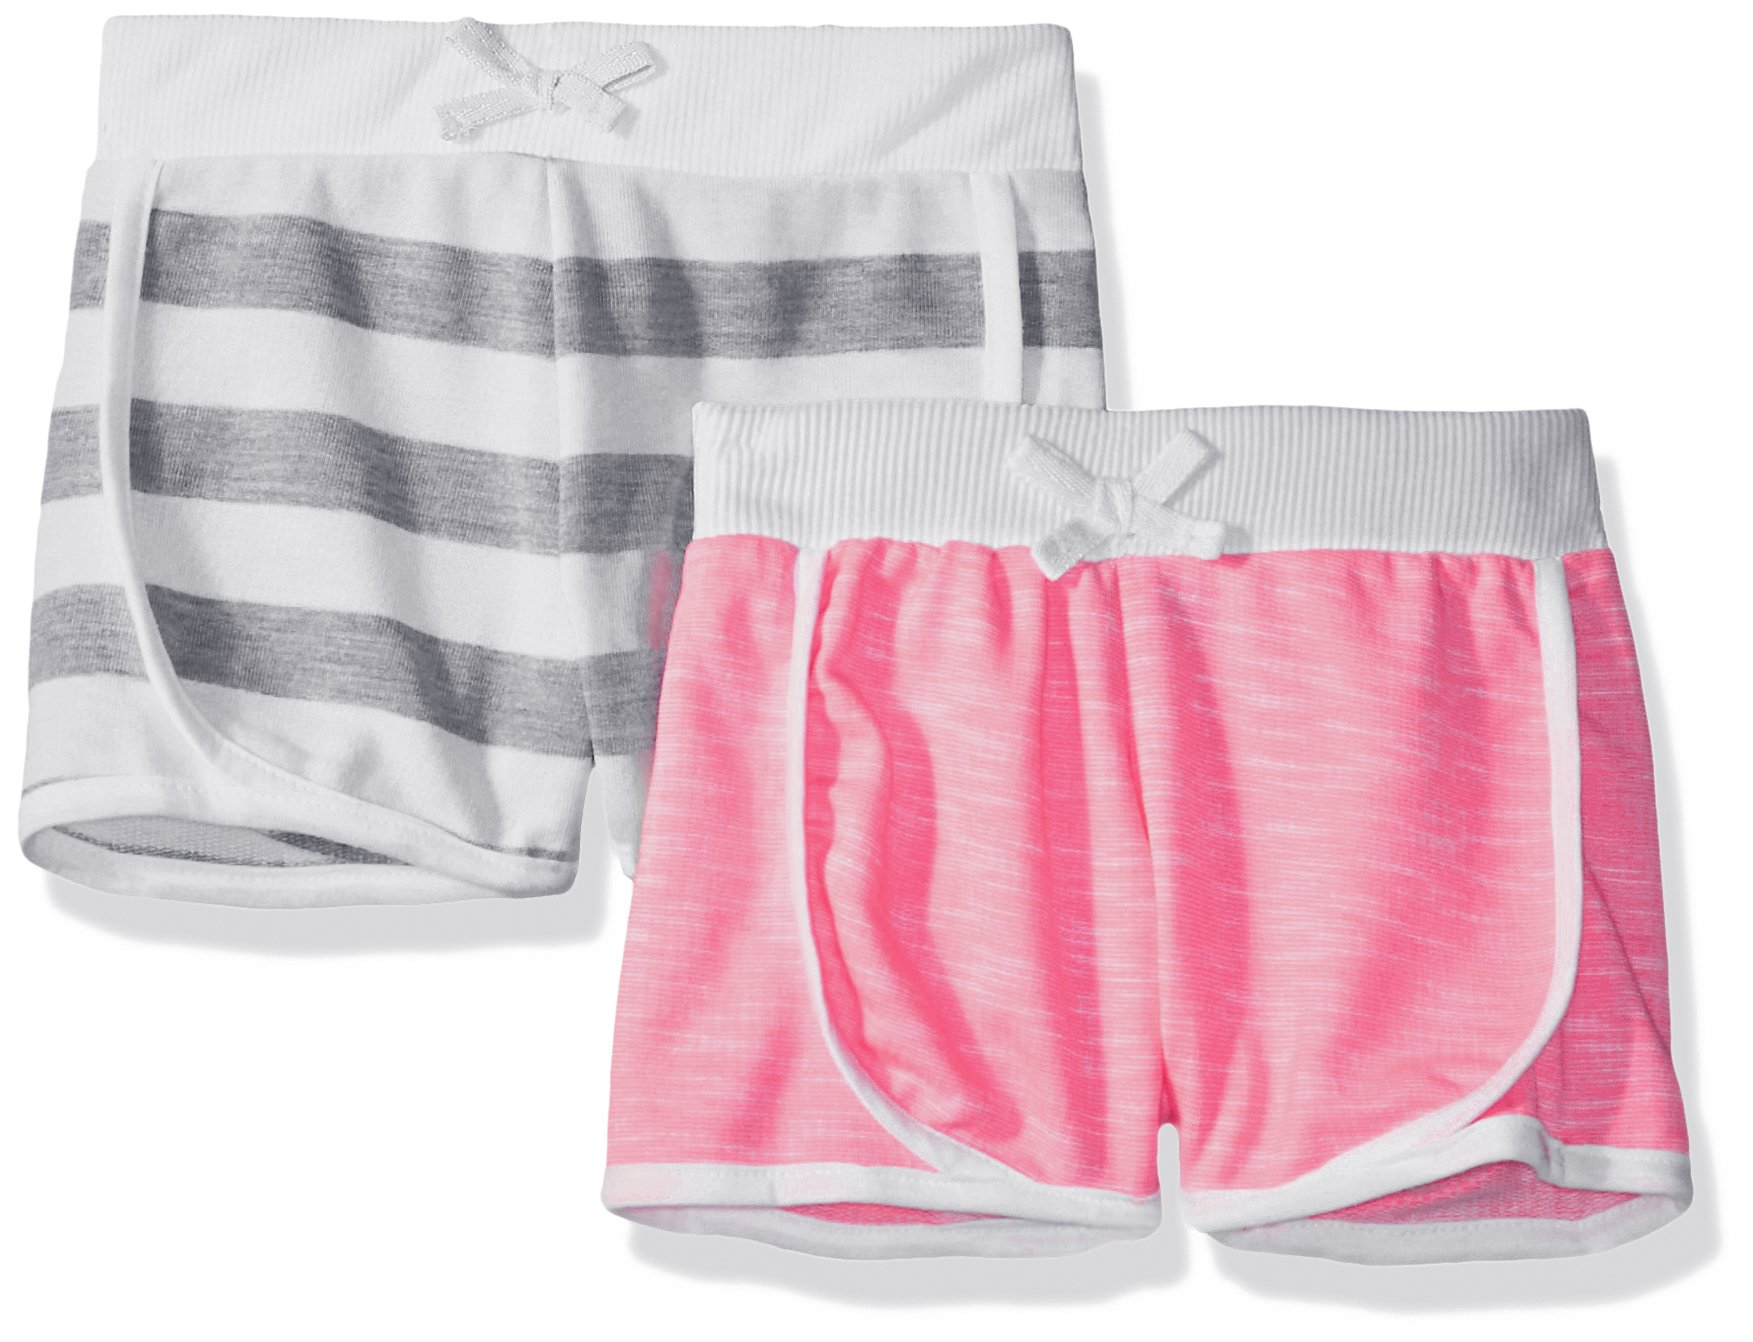 Limited Too Big Girls' 2 Pack Short, White Heather Stripe with Neon Hot Pink/Multi Print, 14/16